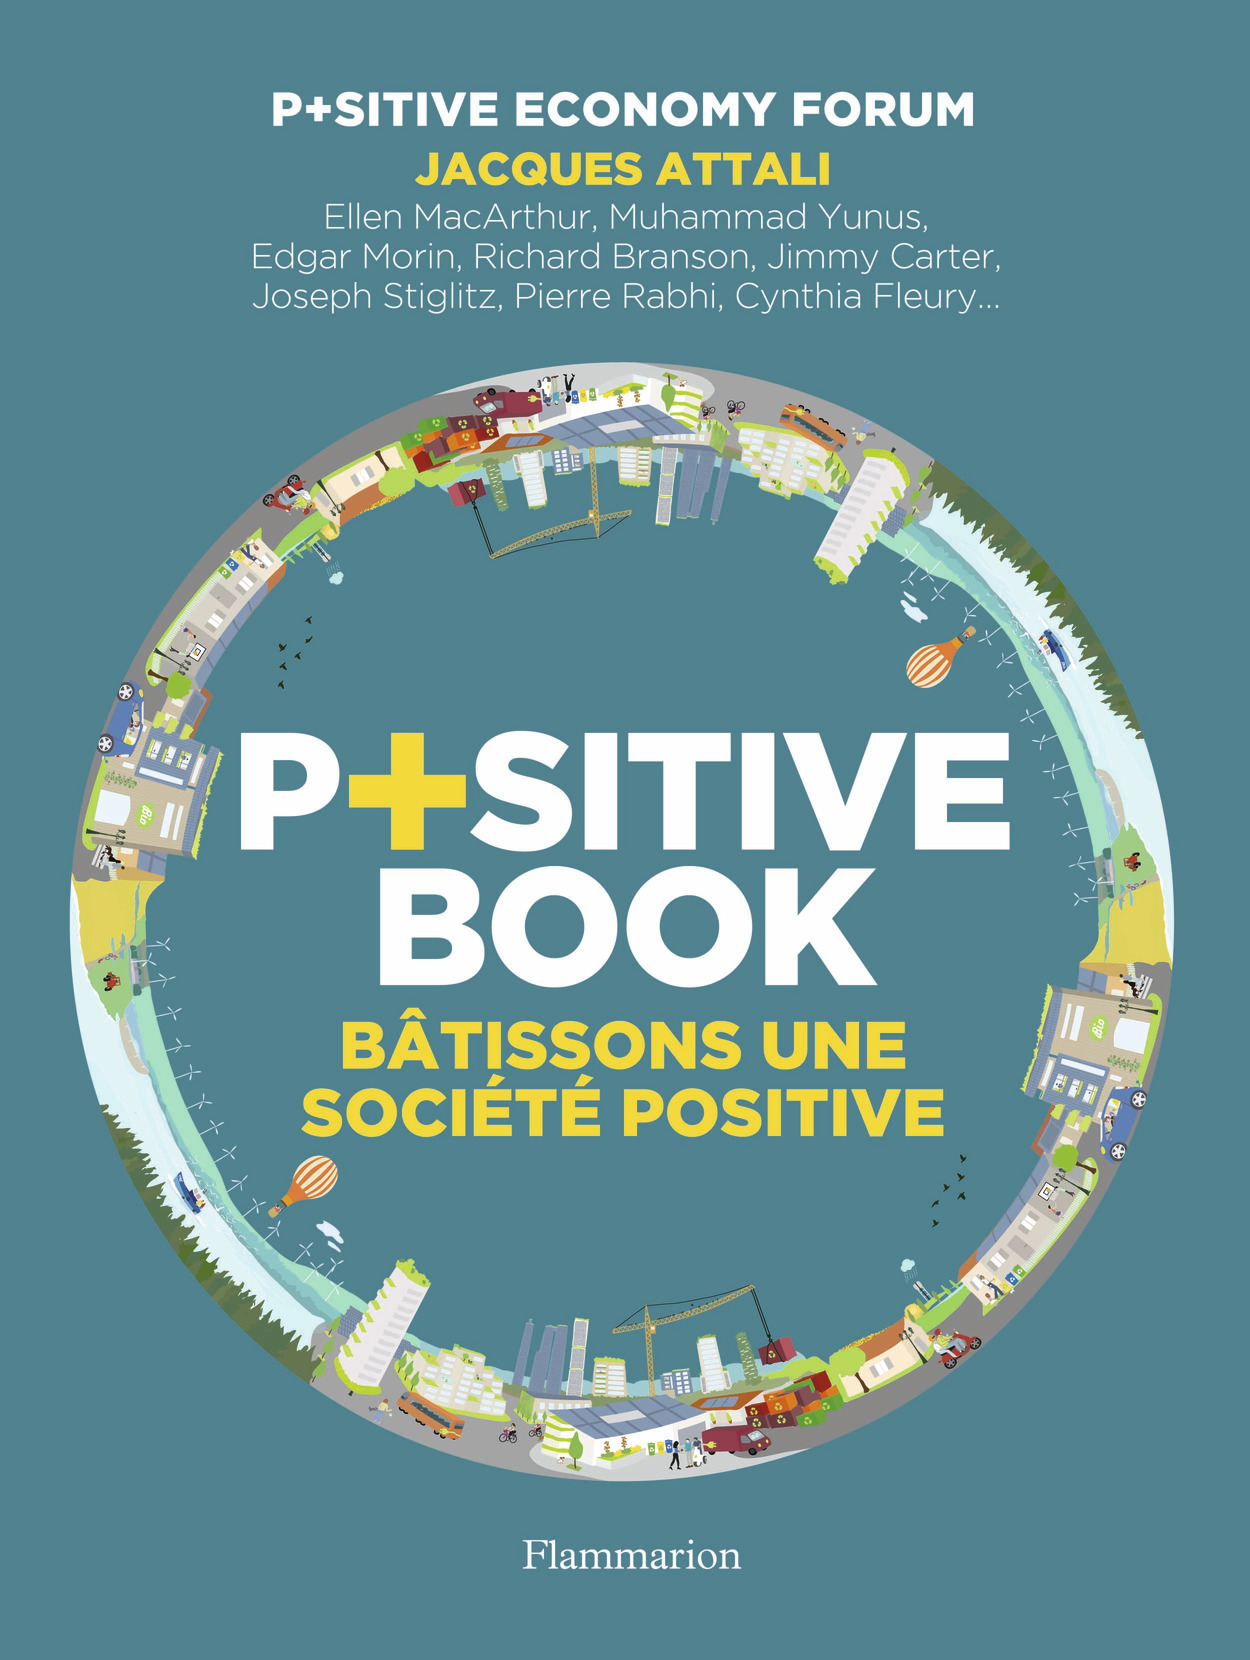 P+SITIVE BOOK